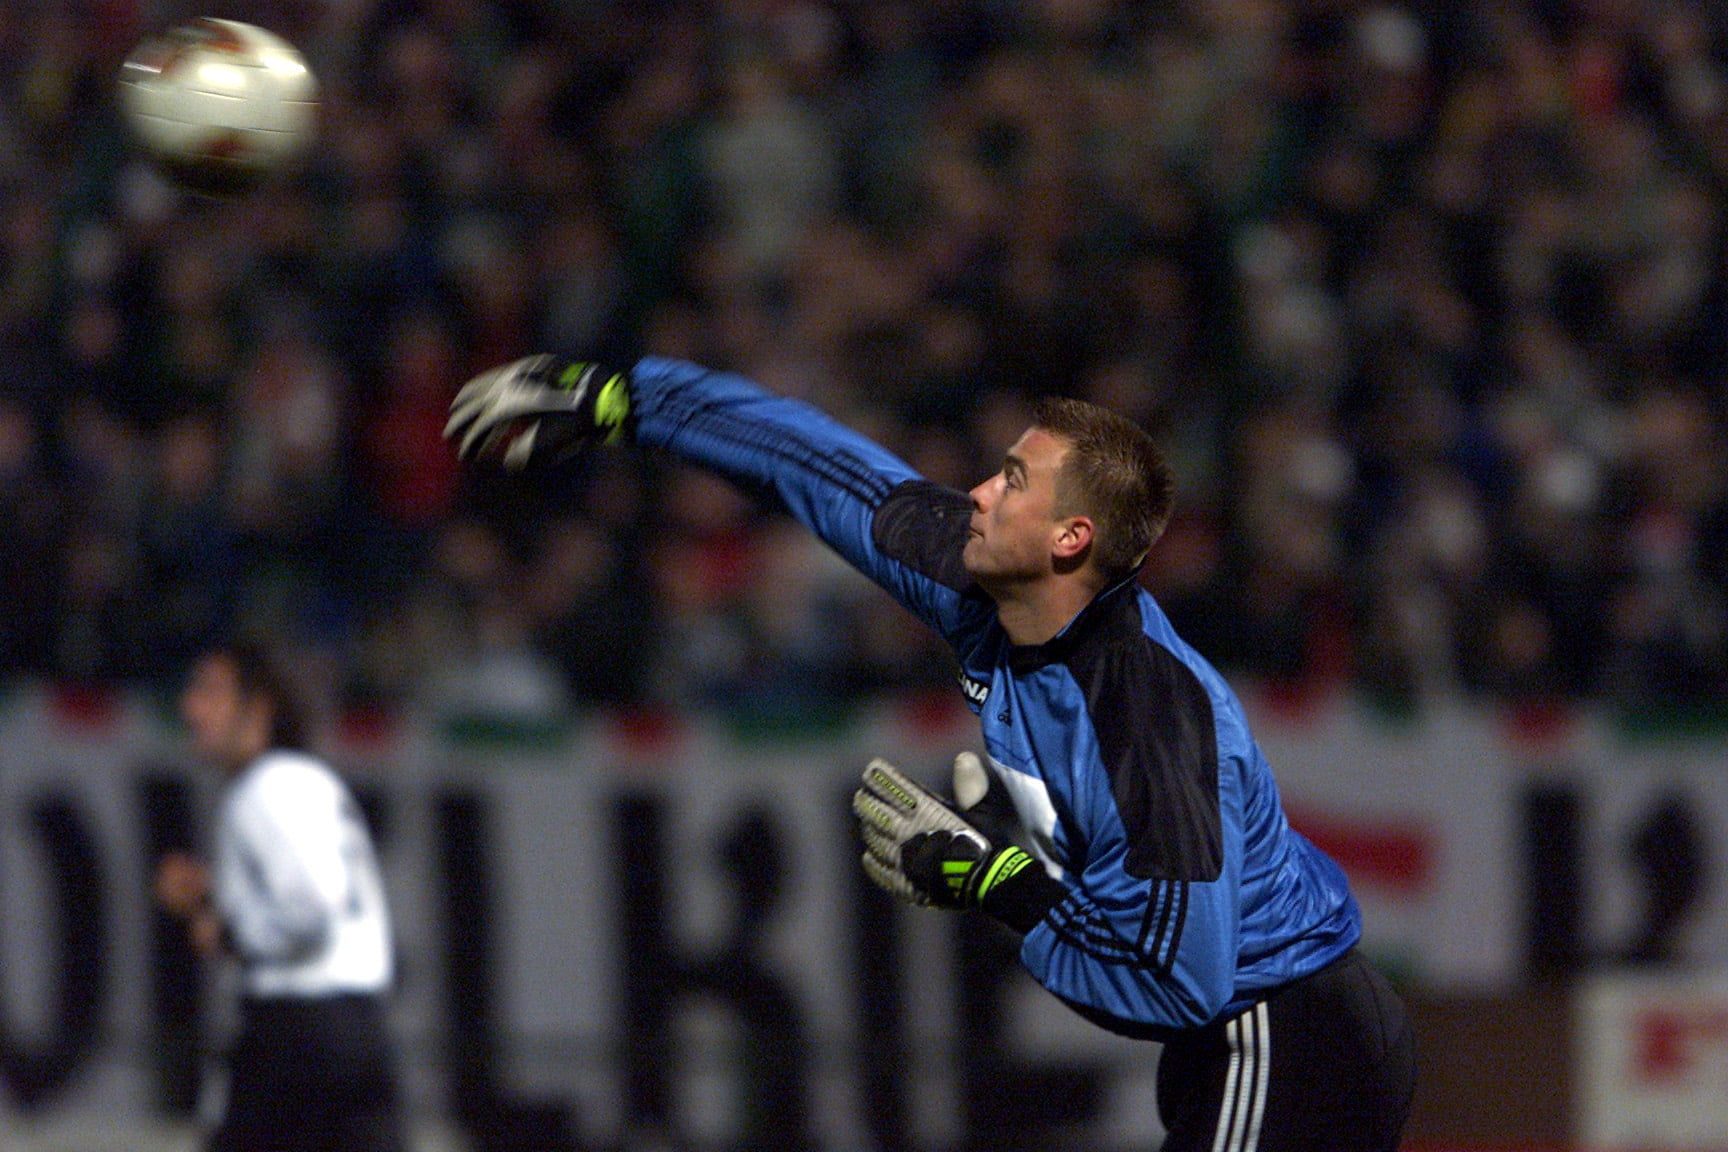 PILKA NOZNA LEGIA WARSZAWA WISLA KRAKOW WYNIK1 0 WARSZAWA 14/03/2002 ARTUR BORUC FOT. PIOTR NOWAK --- Newspix.pl *** Local Caption *** www.newspix.pl mail us: info@newspix.pl call us: 0048 022 23 22 222 --- Polish Picture Agency by Axel Springer Poland